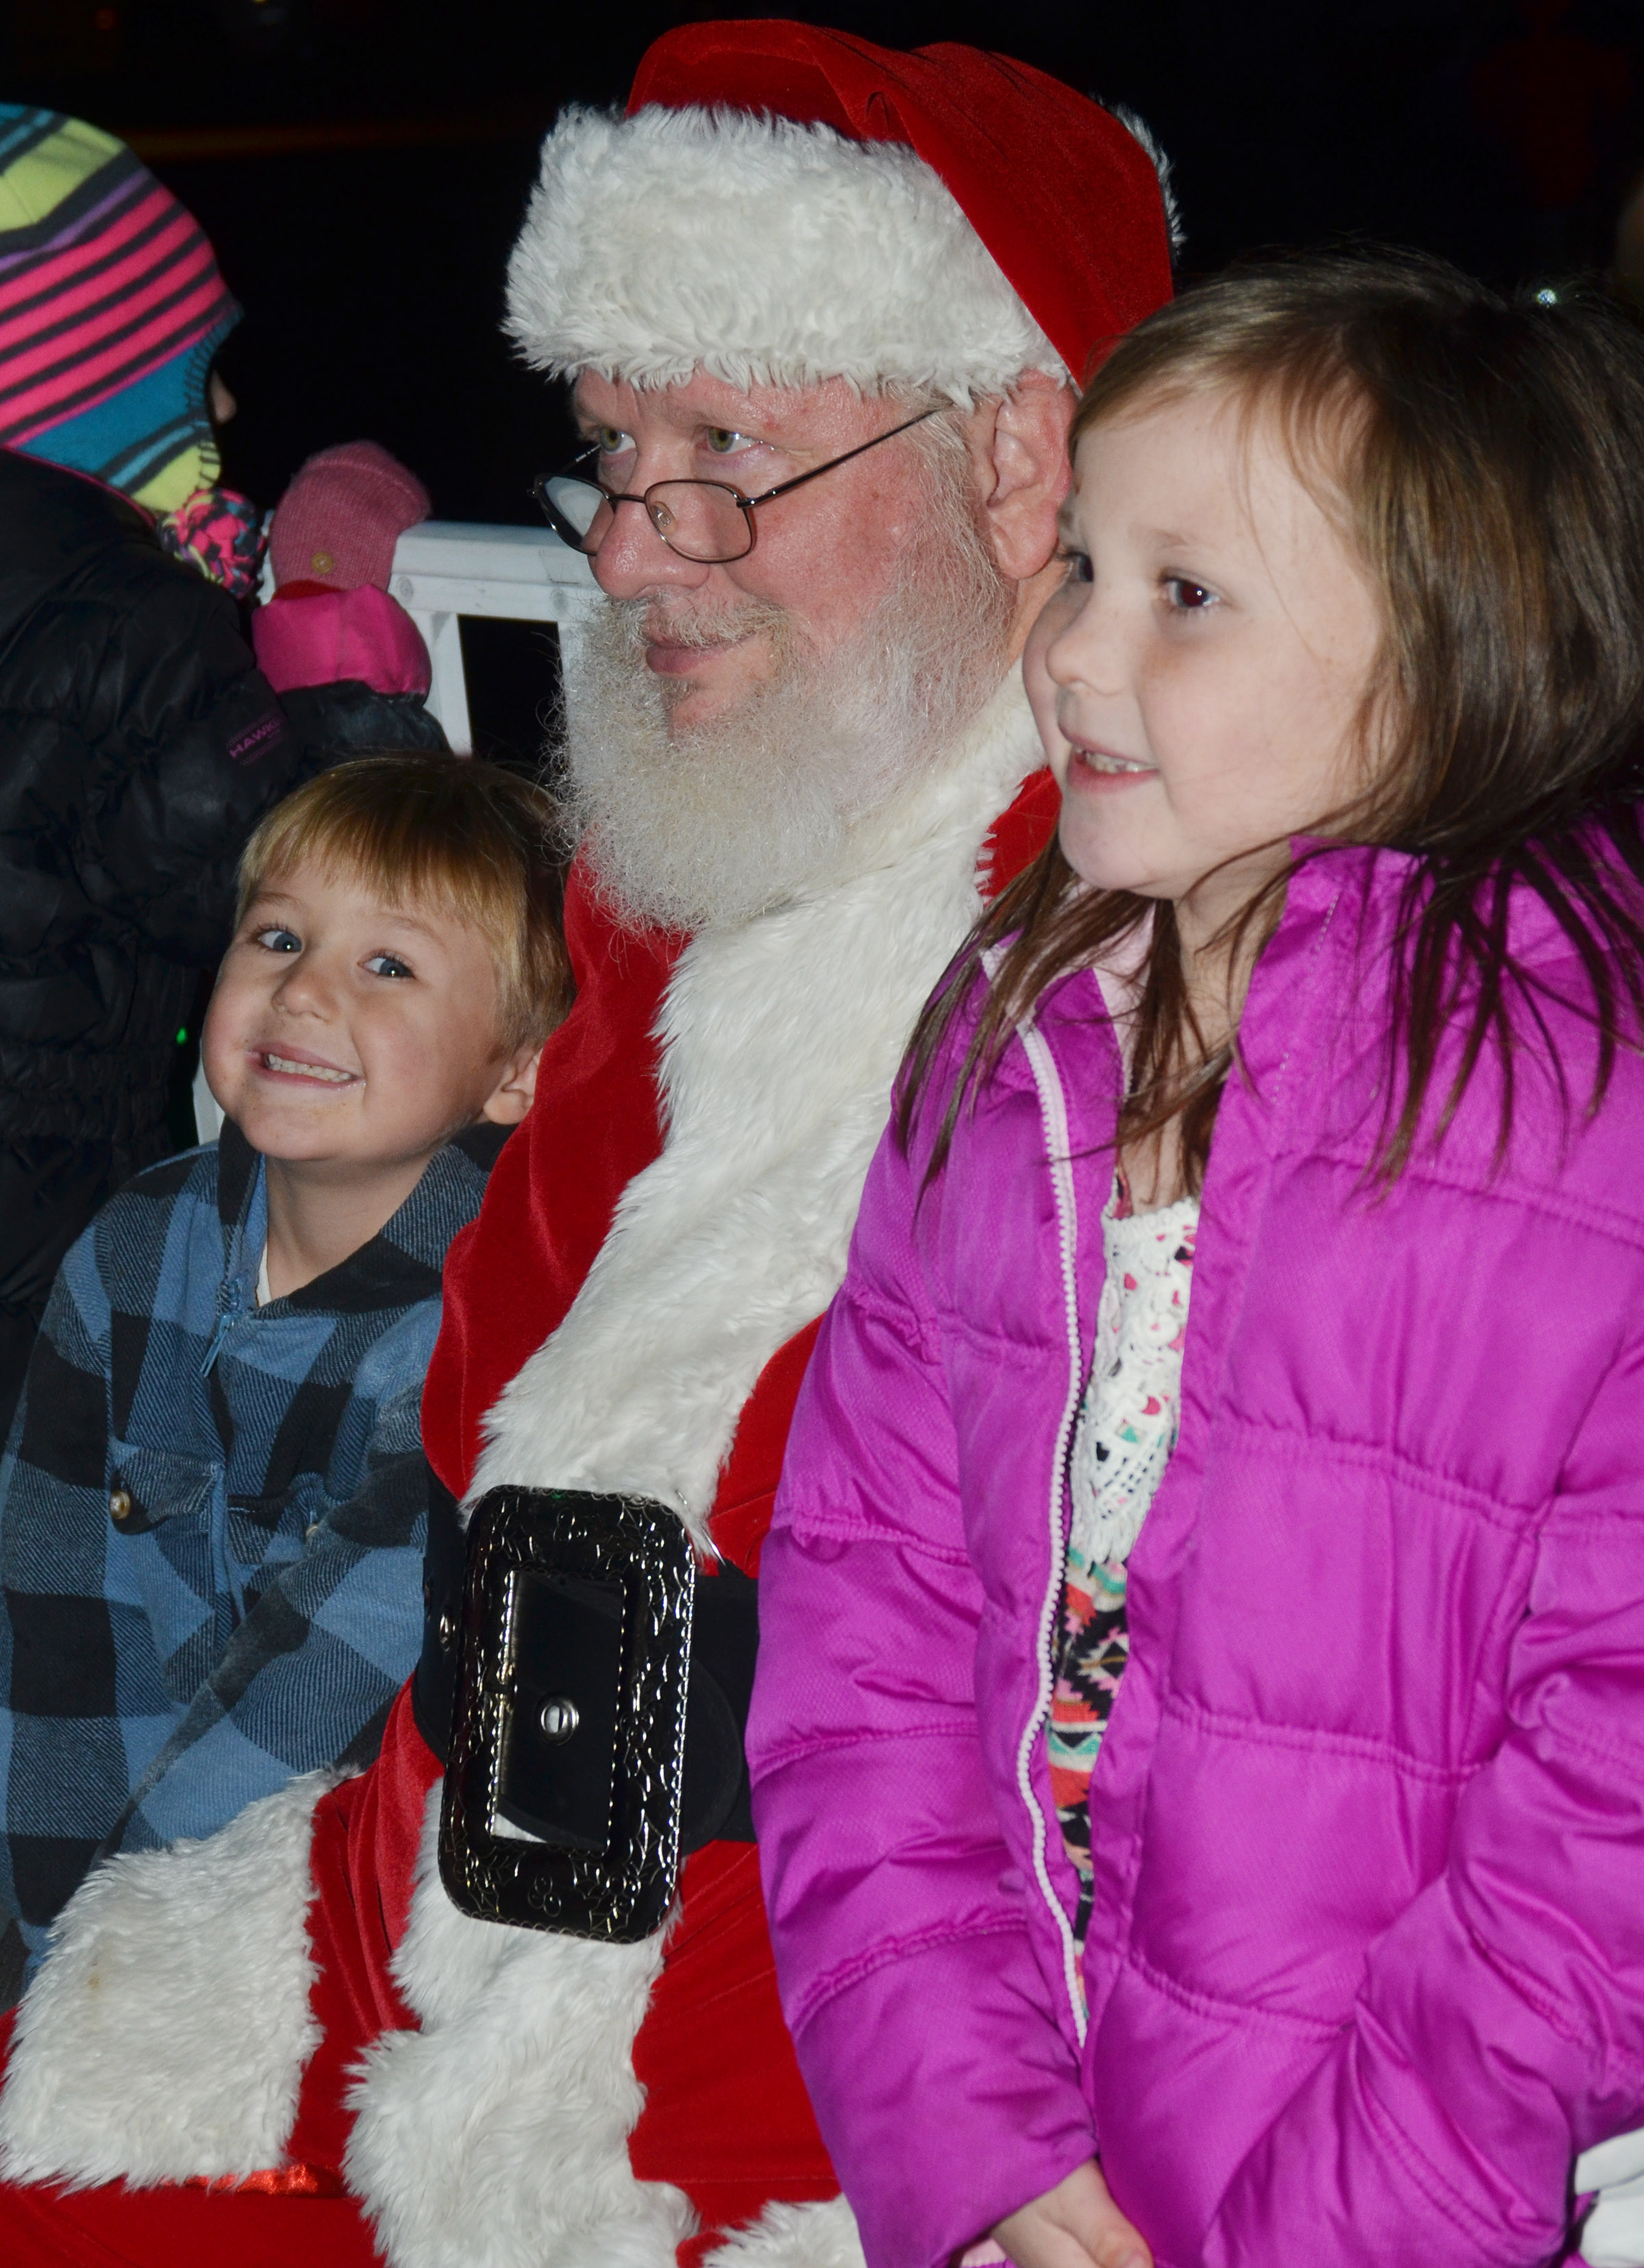 CES second-grader Cadynce Cox, at left, and preschool student Bentley Cox smile for a photo with Santa.